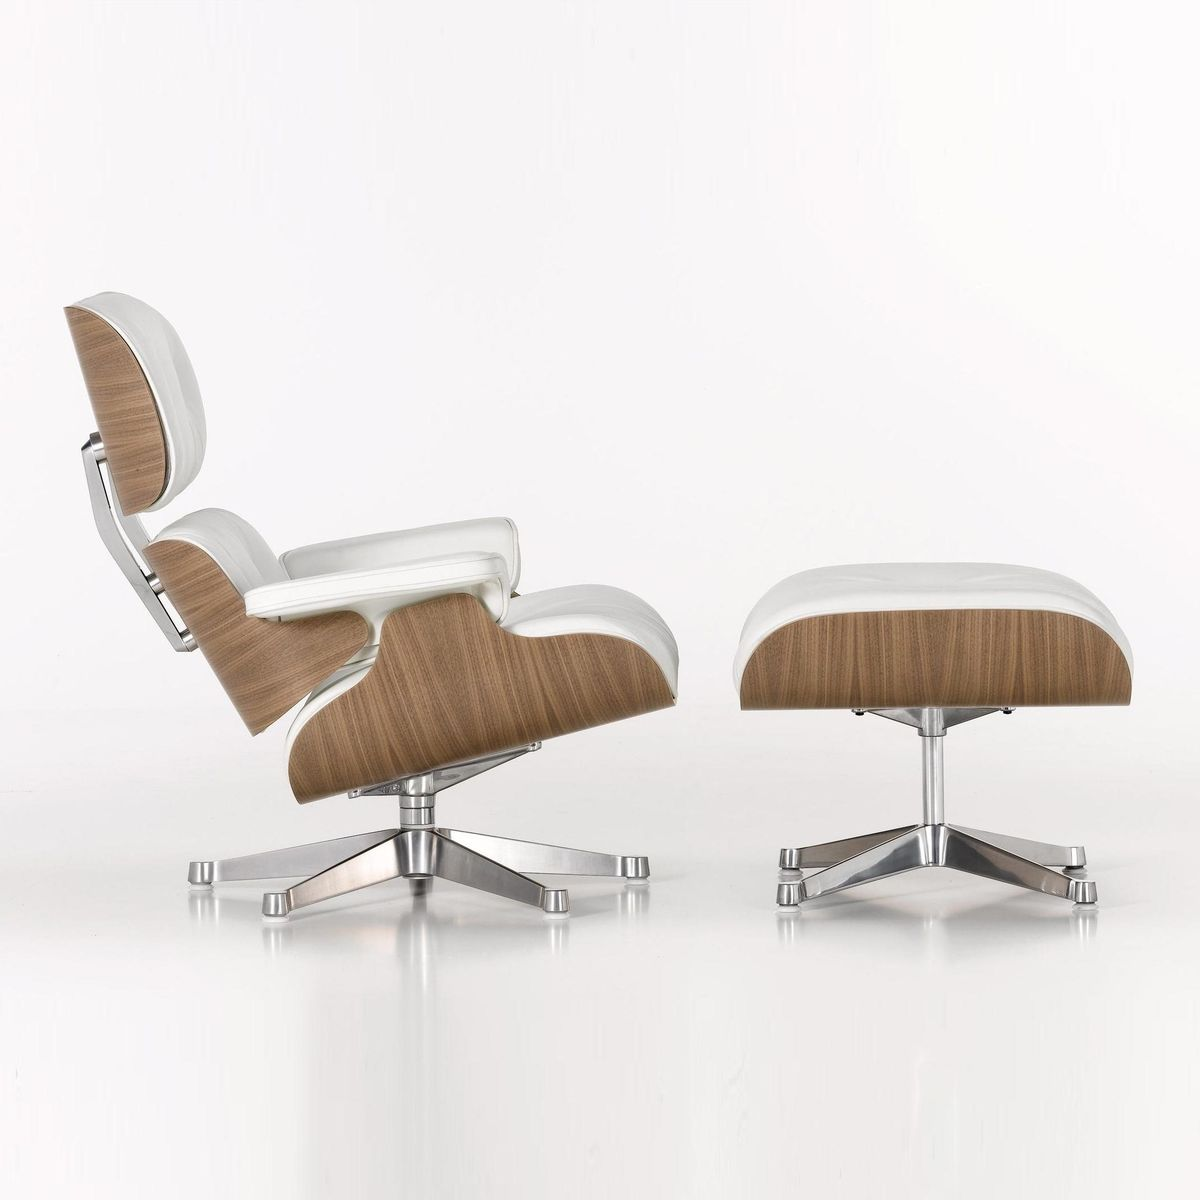 Eames lounge chair ottoman vitra for Vitra lounge chair